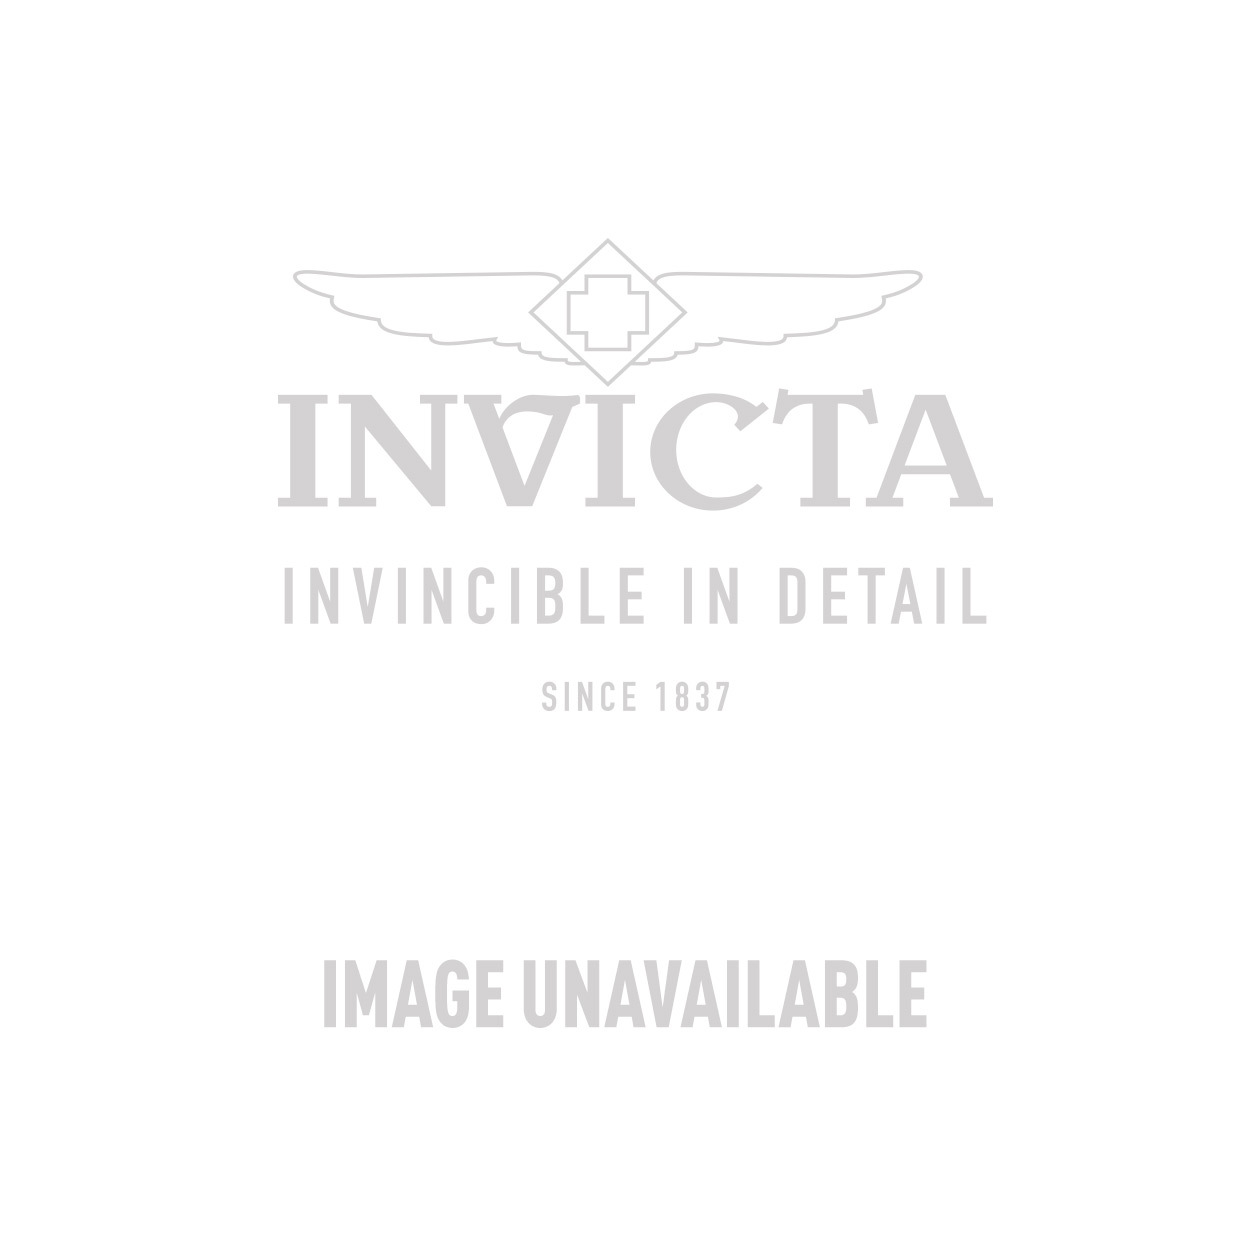 Invicta Specialty Swiss Movement Quartz Watch - Rose Gold case with Rose Gold tone Stainless Steel band - Model 15120